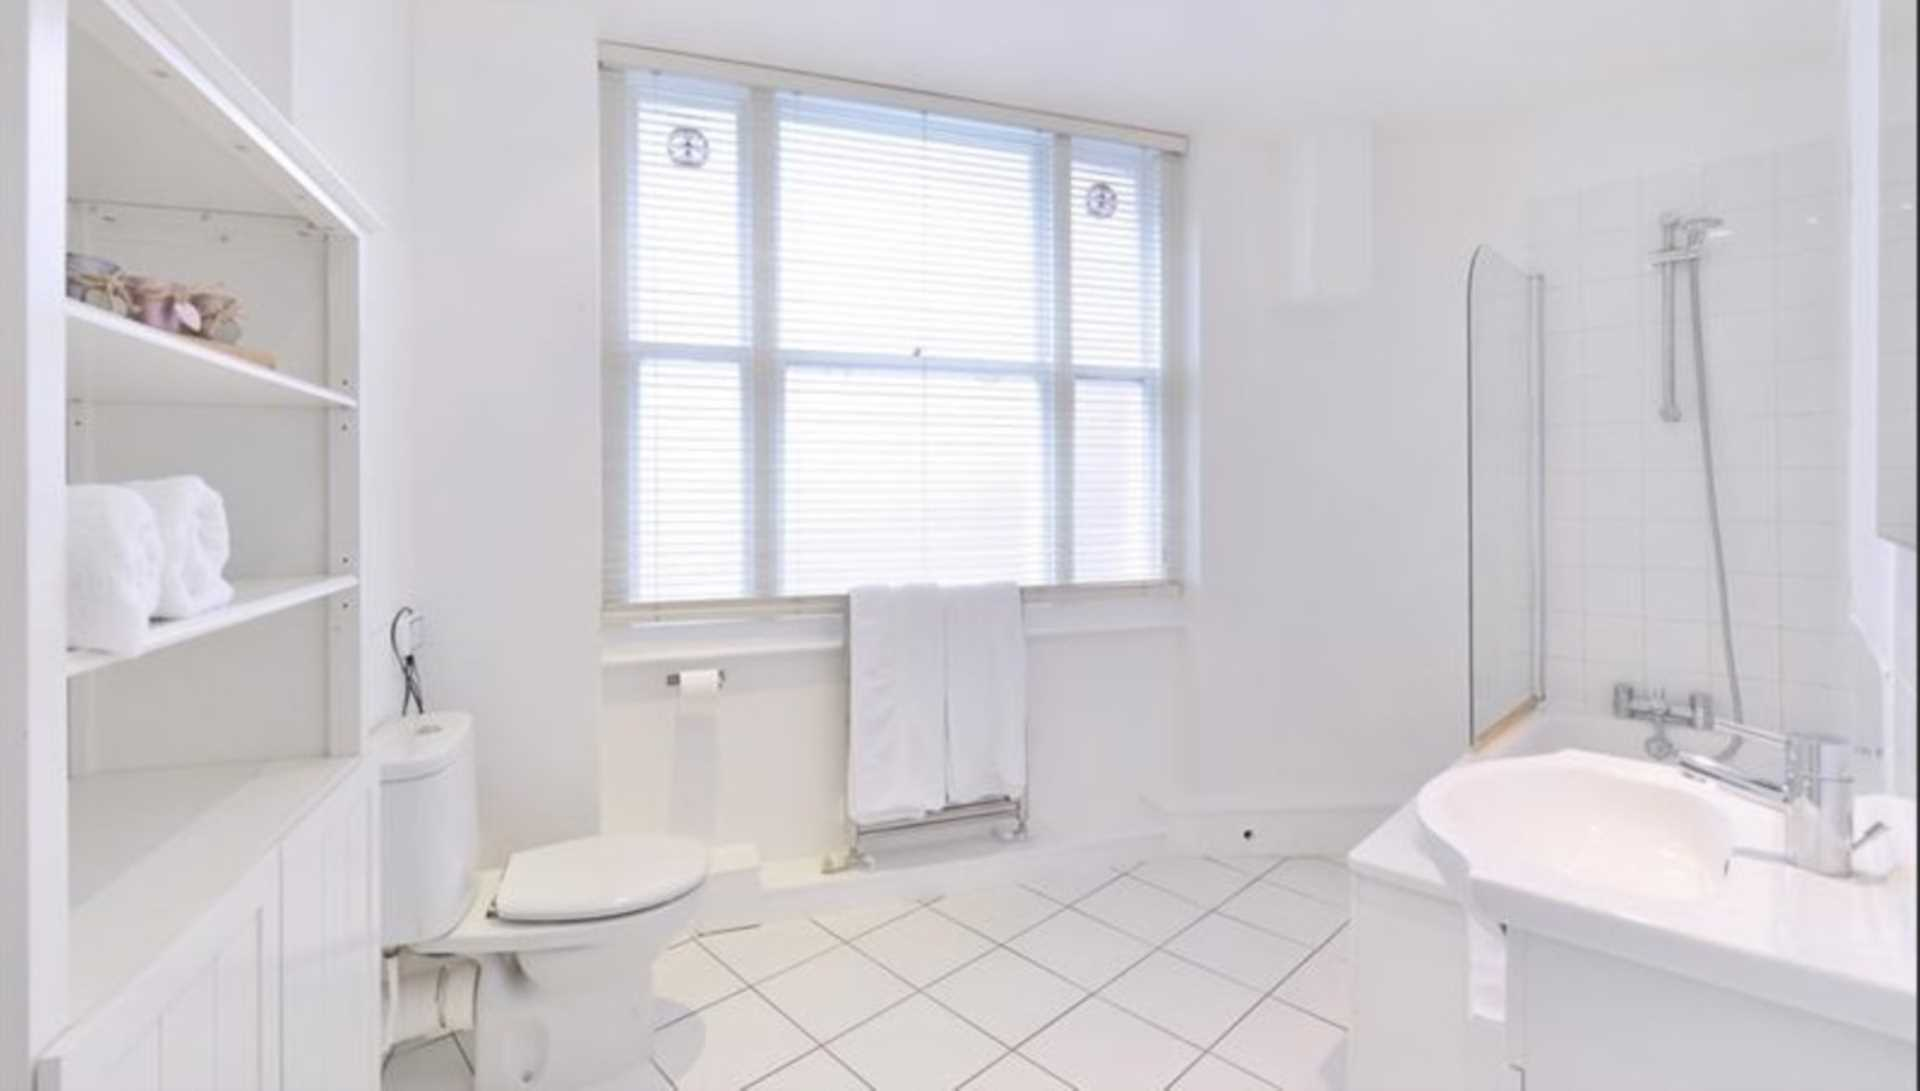 London Rental Property L2L92-12482